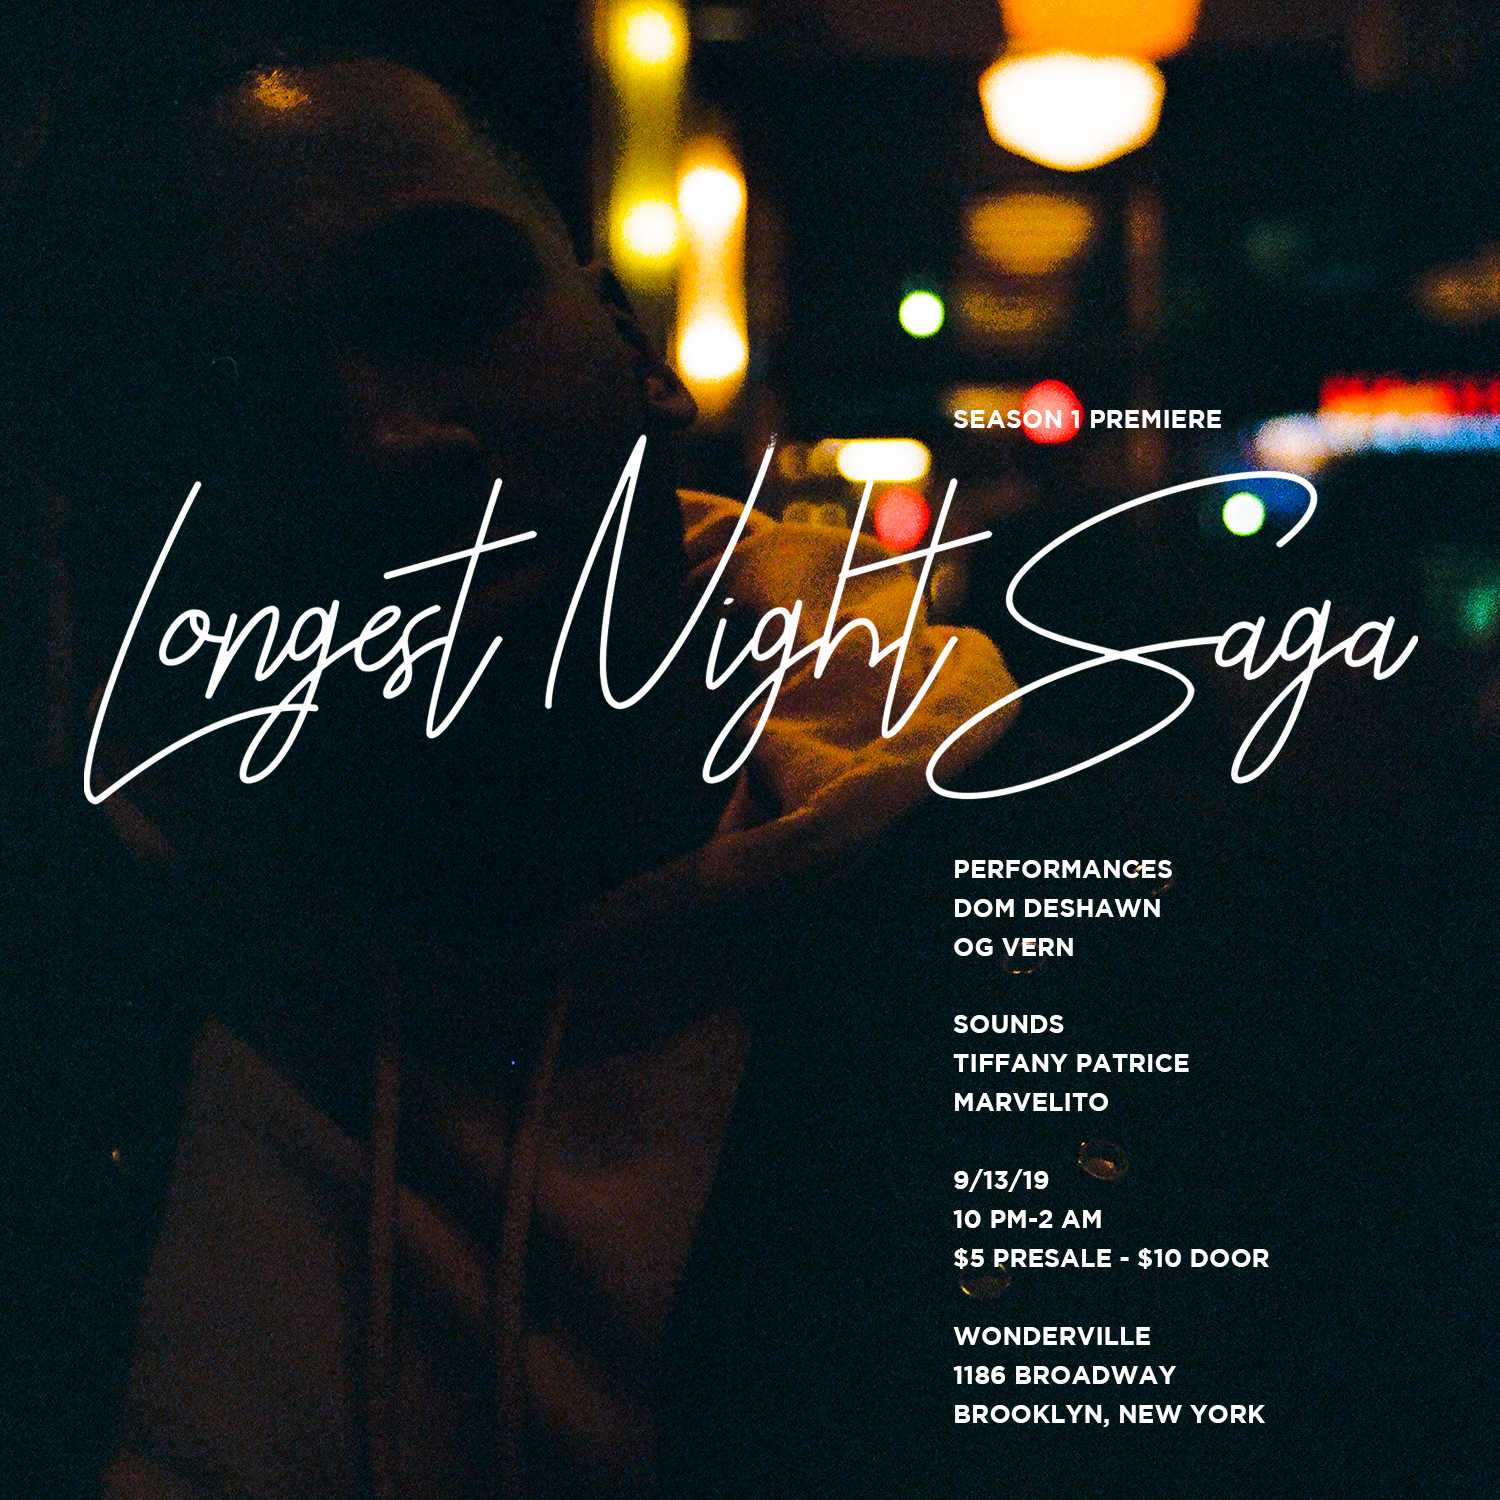 Tickets:  https://withfriends.co/Event/2416844/Longest_Night_Saga_Season_1_Premiere